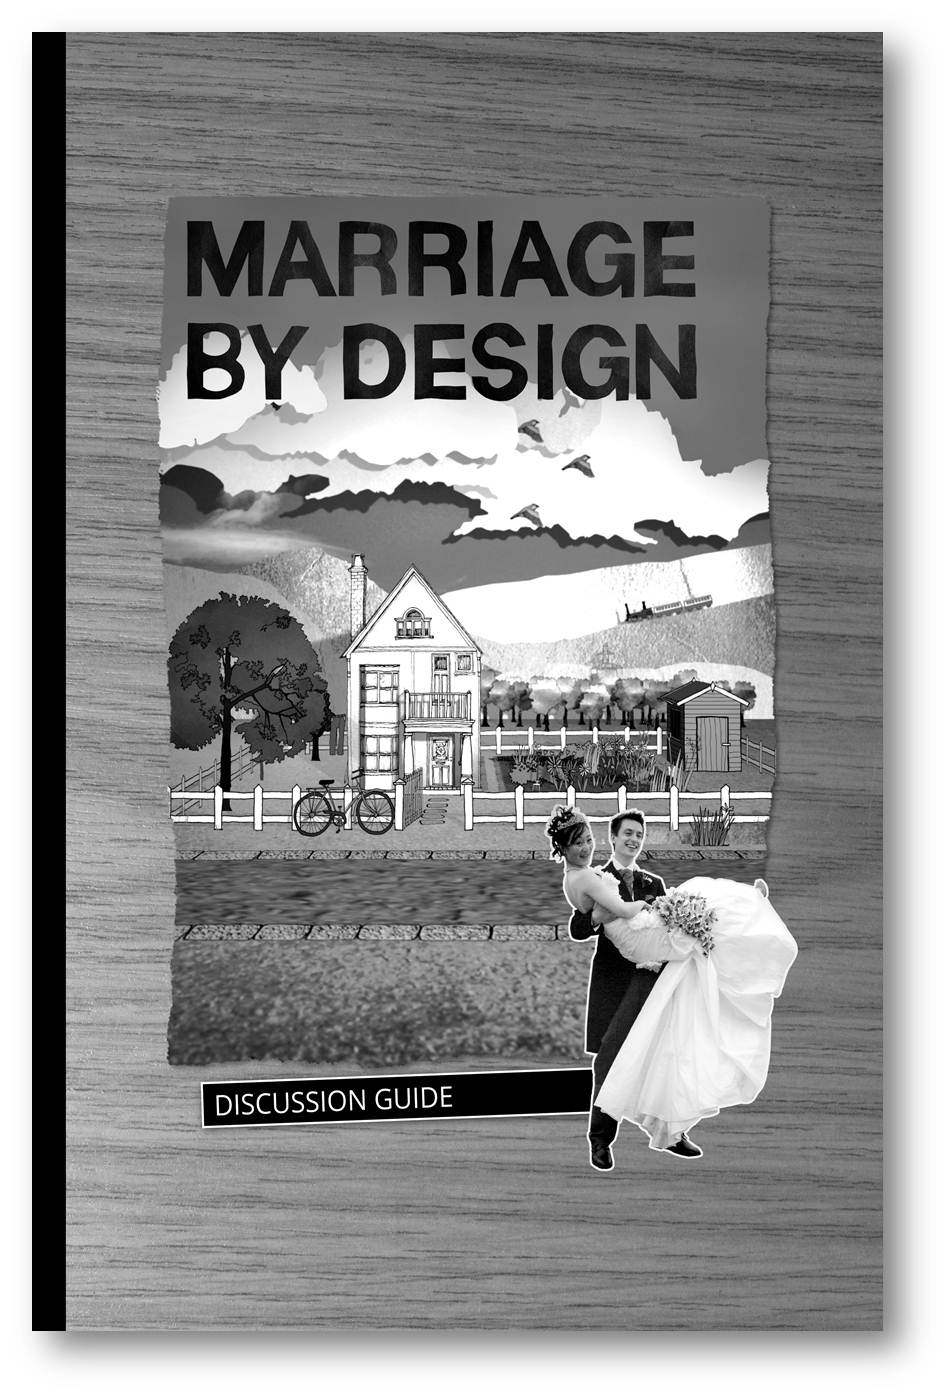 Marriage By design discussion guide